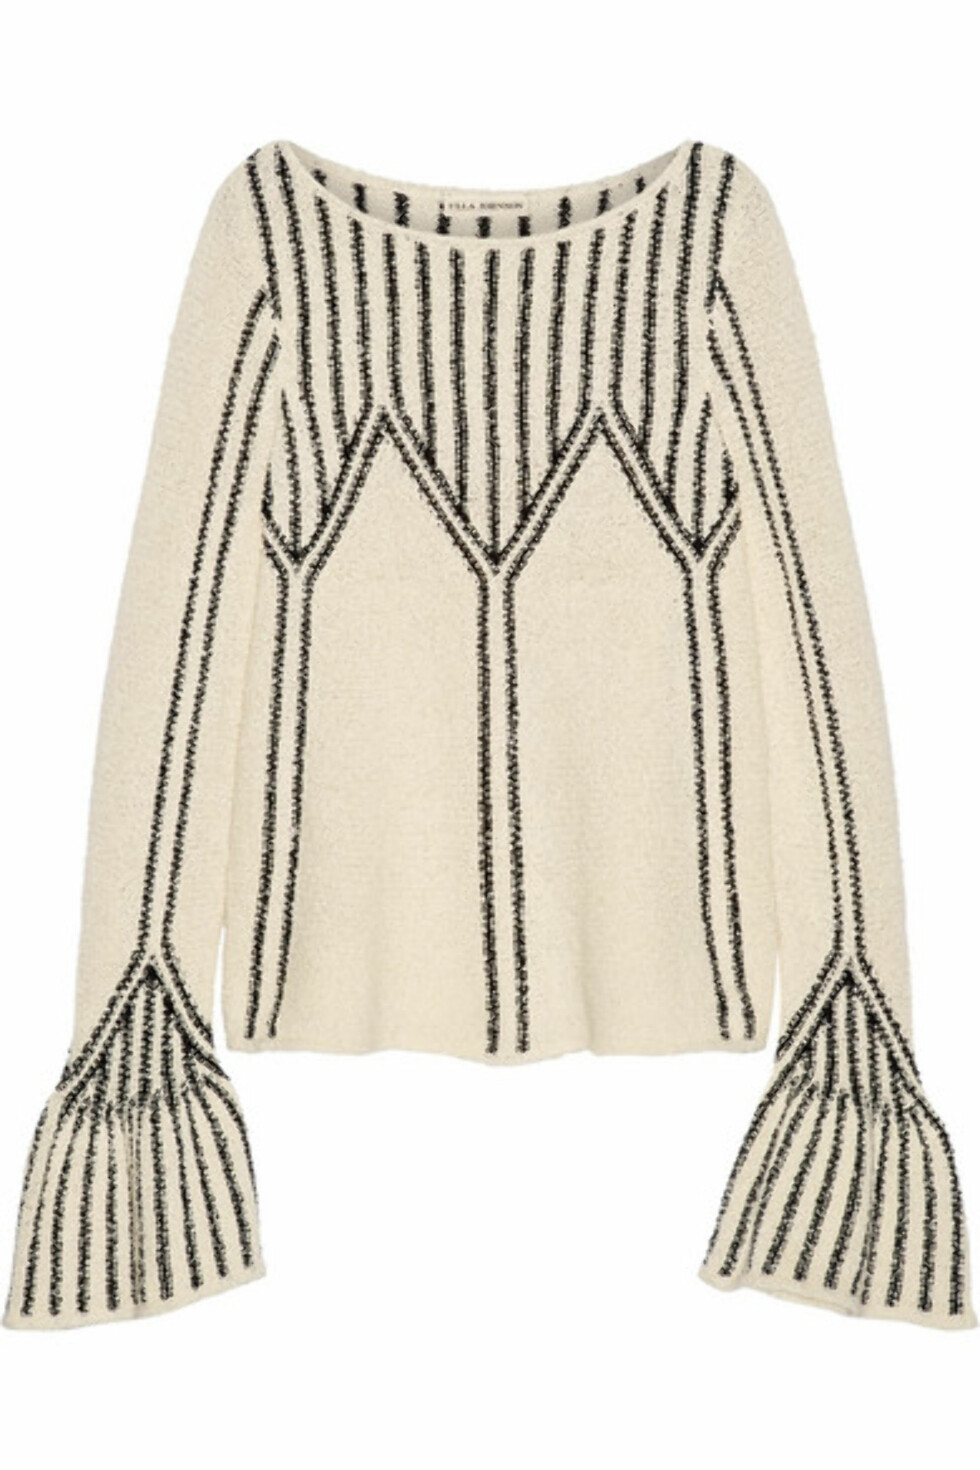 Genser fra Ulla Johnson |3400,-| https://www.net-a-porter.com/no/en/product/892534/ulla_johnson/beatriz-boucle-knit-cotton-sweater